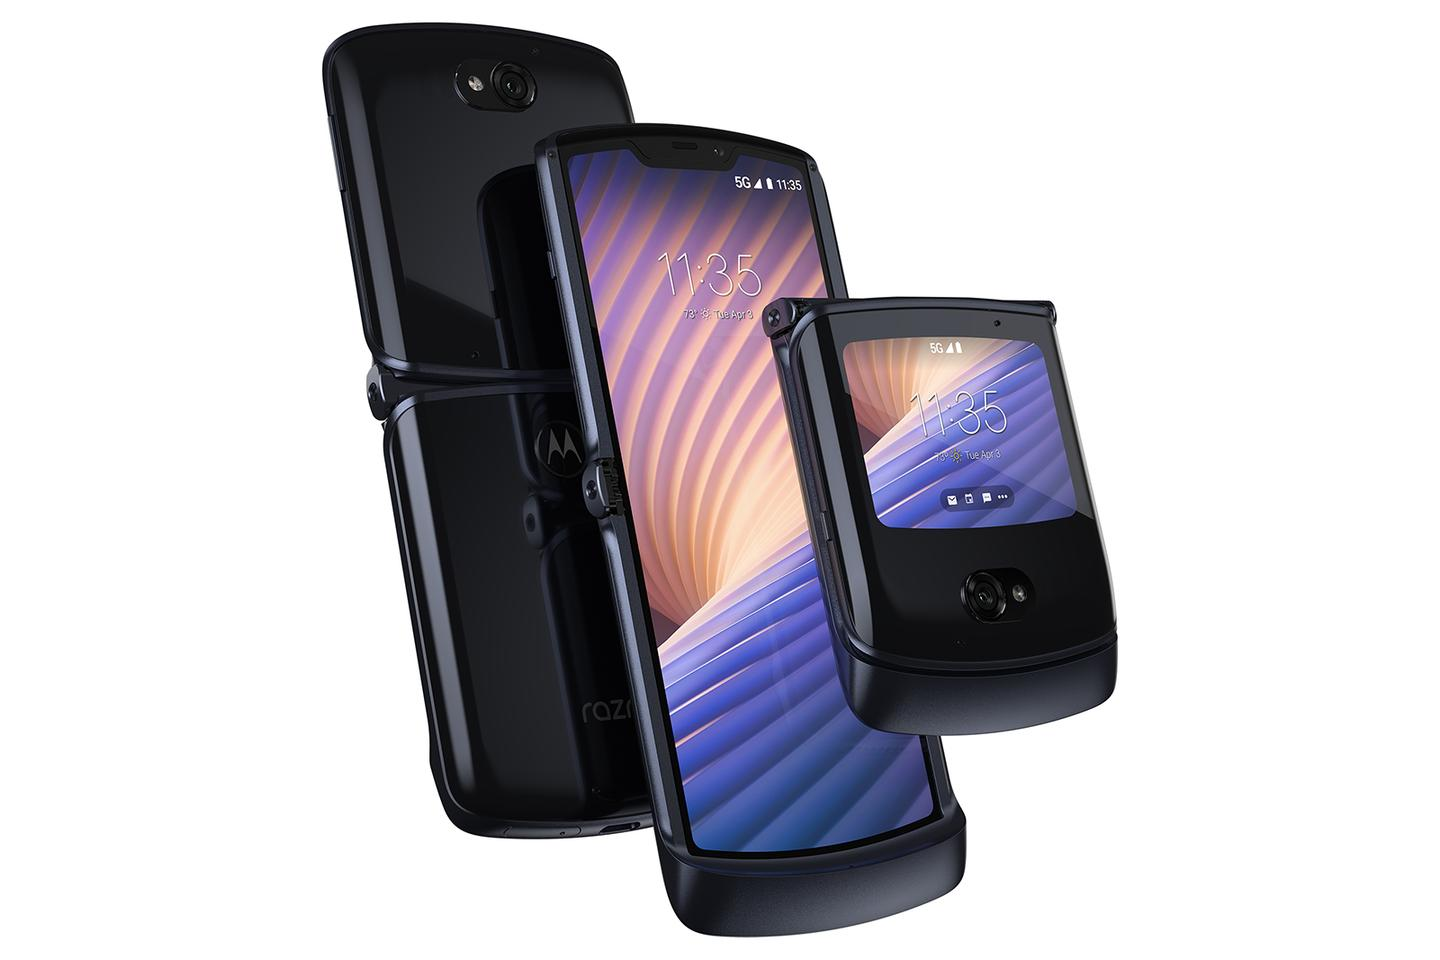 The Motorola Razr offers a new twist on a retro form factor